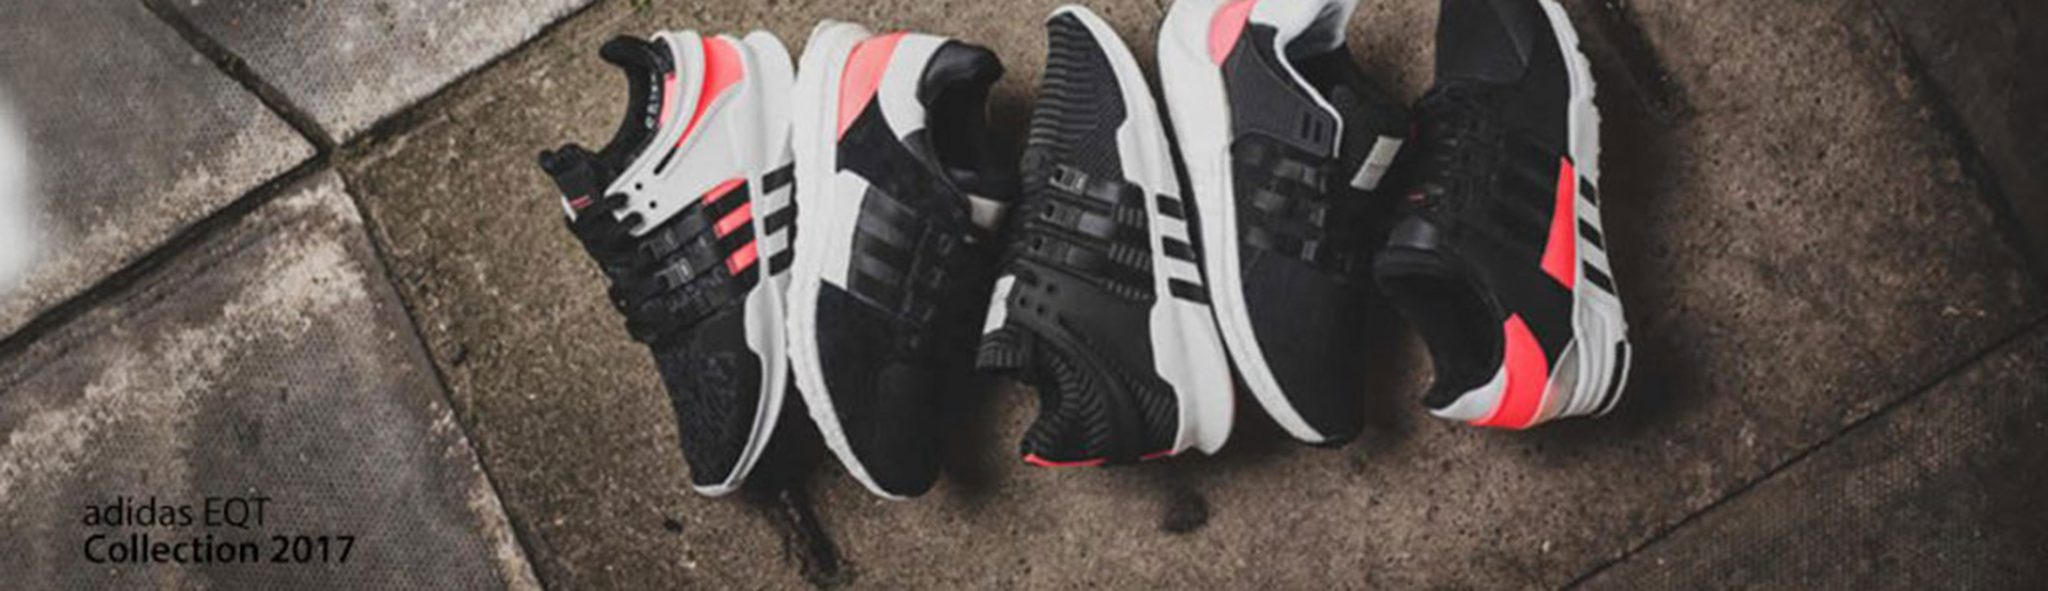 adidas EQT Collection